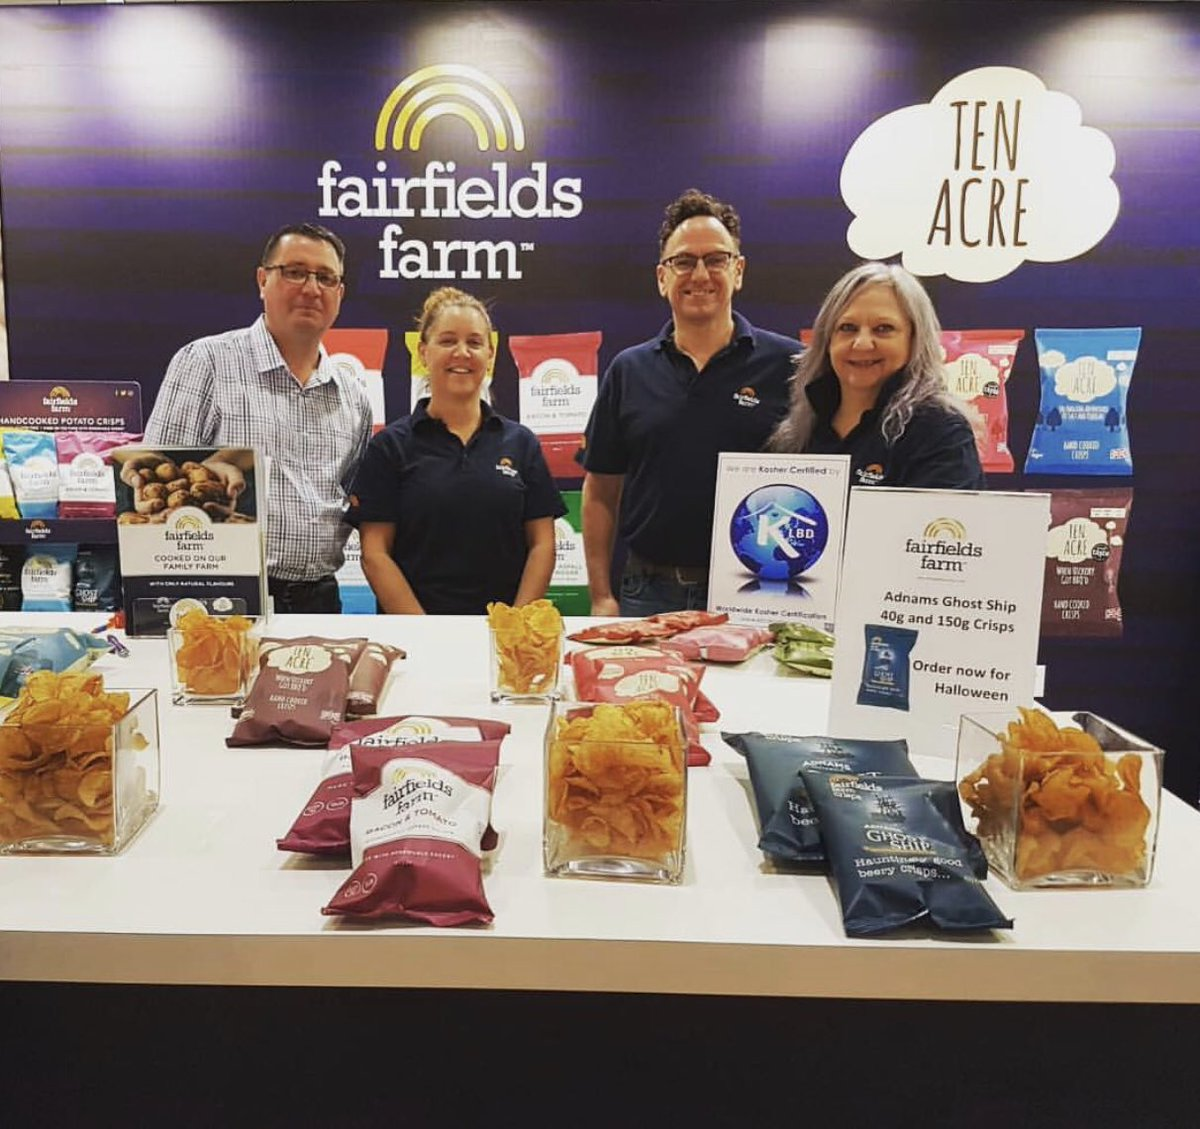 It's a wrap ✅ fantastic 4 days @ife_event thankyou to our amazing team who I know have worked so hard over the last few days and I'm sure have had some fun as well! #ife19 #itsawrap #tired #feetaresore #workedhard #newcustomers #exsistingcustomers #hadlotsoffun #greatteam